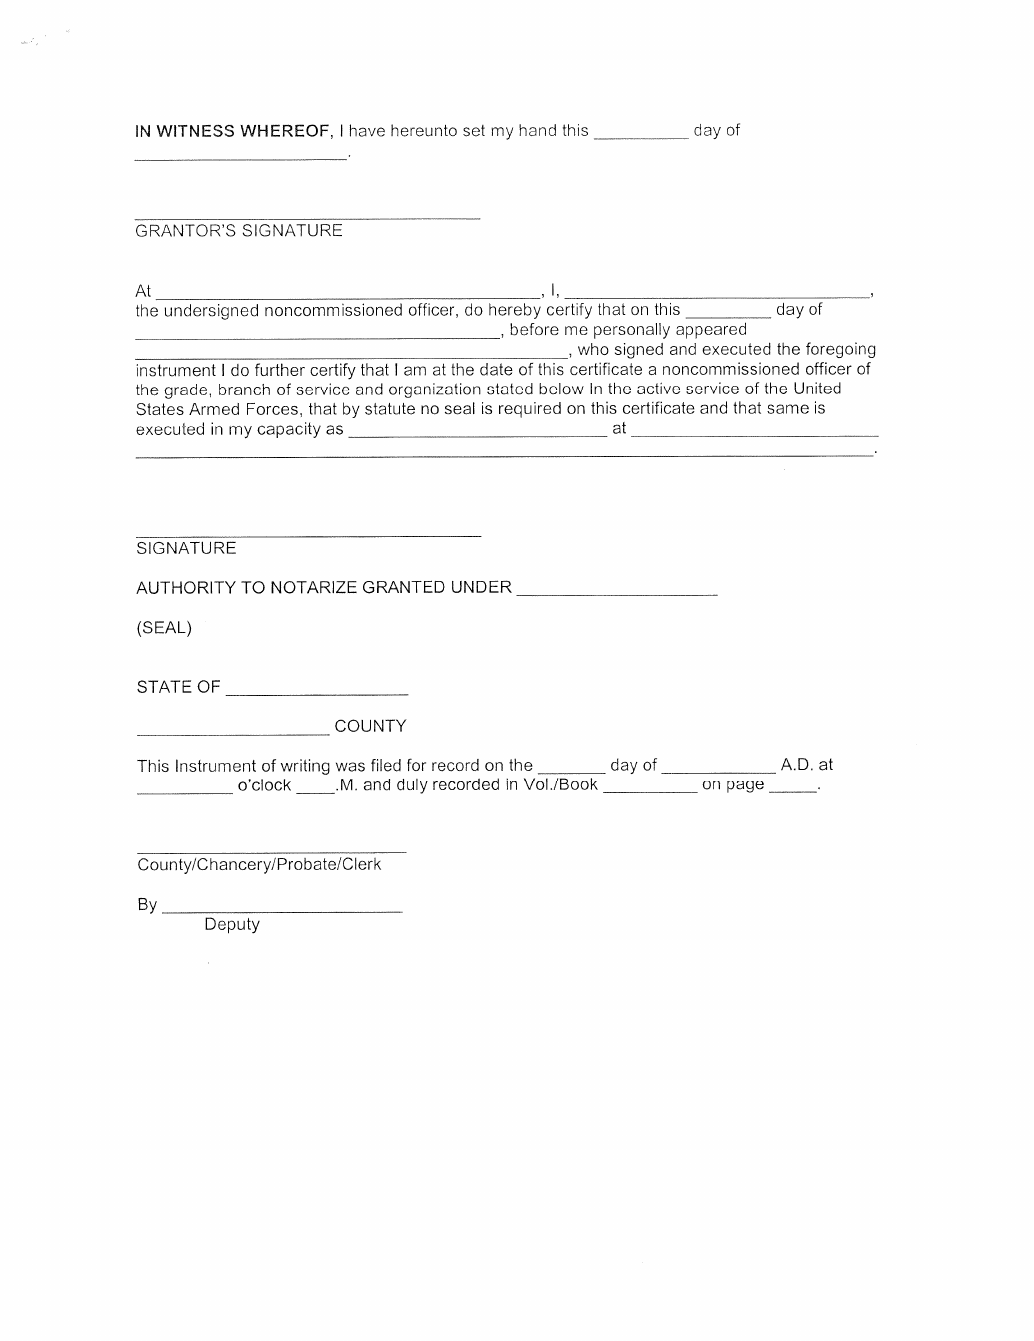 bg3 General Power Of Attorney Form Queensland on template for oho, north carolina,